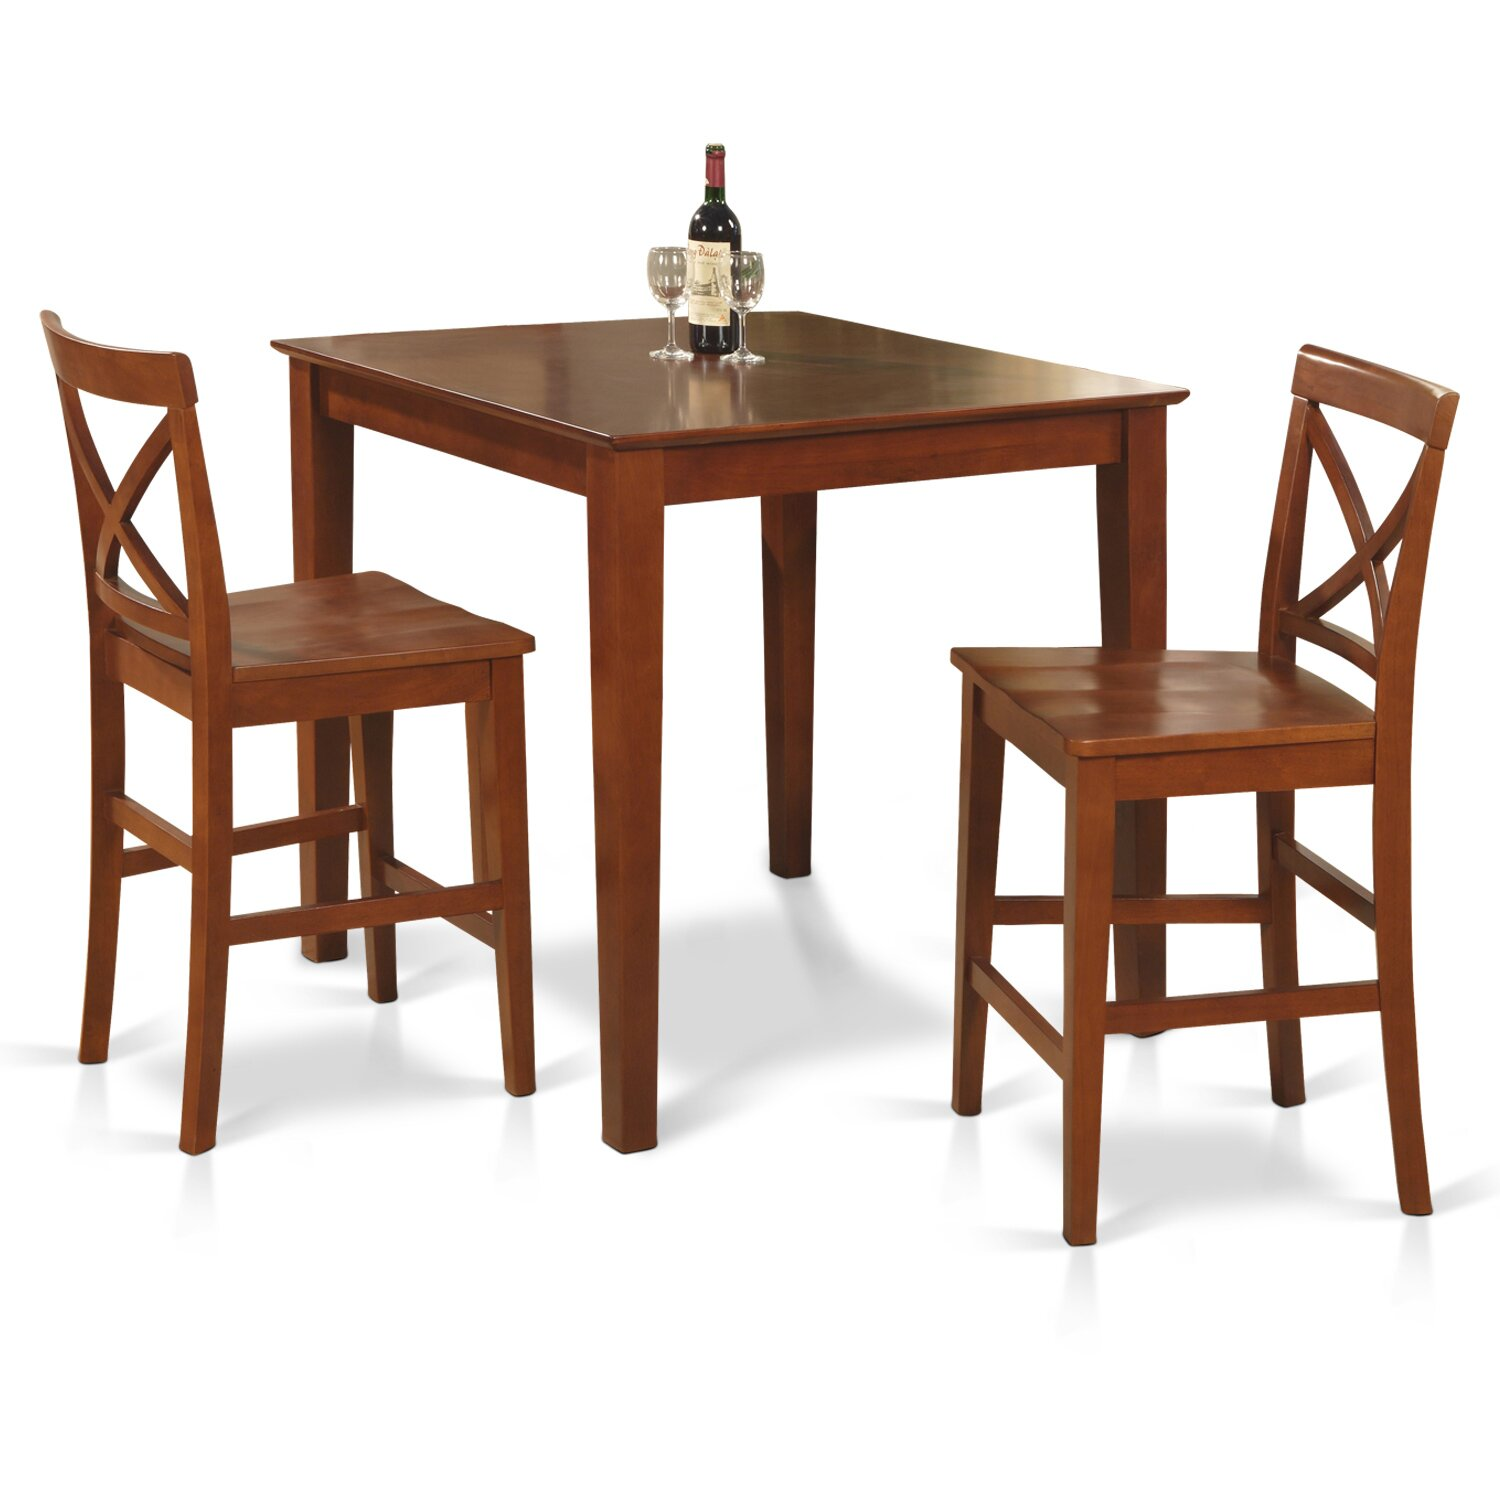 East west 3 piece counter height dining set reviews for Signoraware organise your kitchen set 8 pieces